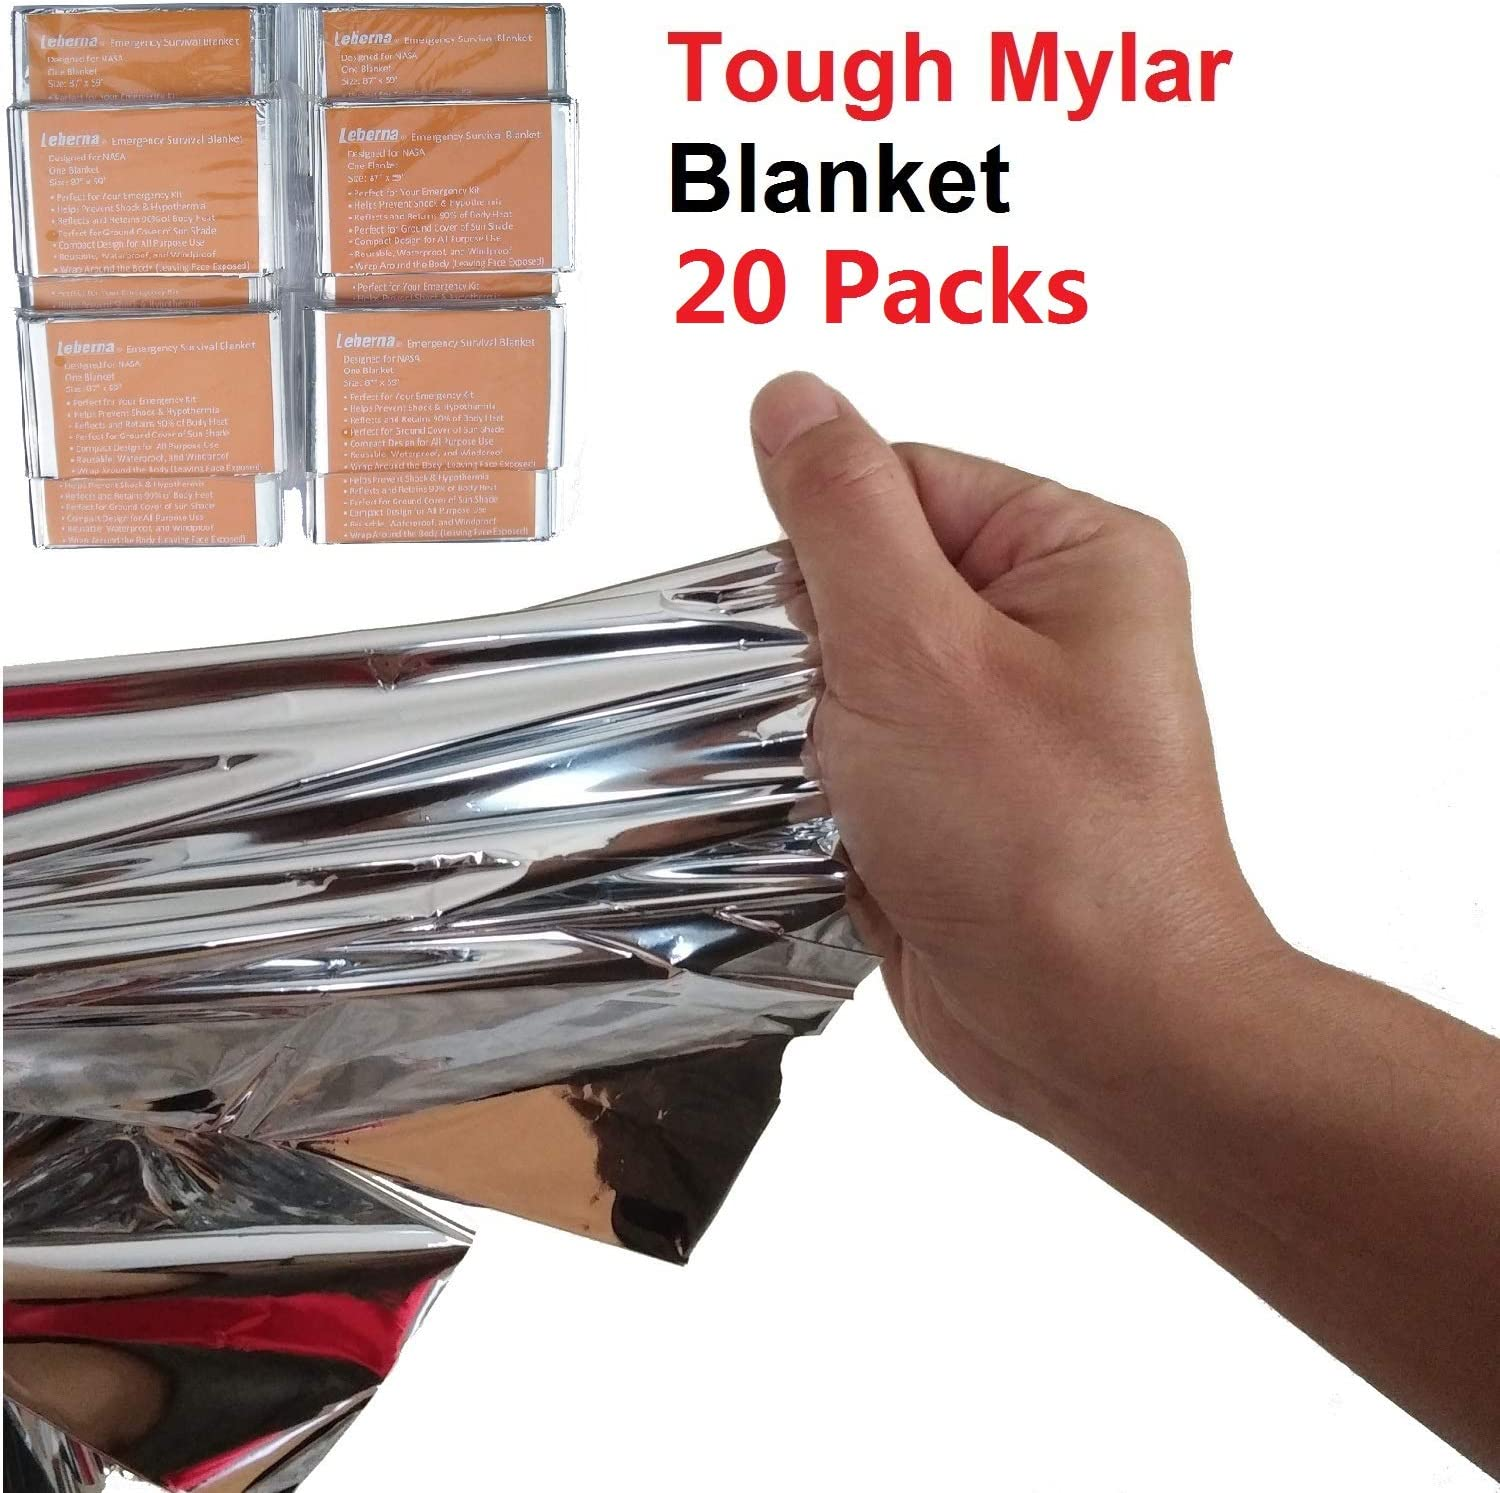 Hiking Marathons First Aid Kit Space Outdoors | for NASA Pack of 20 Leberna Emergency Blanket Survival Gear | Big Double Sided Escape Tact Bivvy Foil Mylar Thermal Blankets 59 x 87 inches